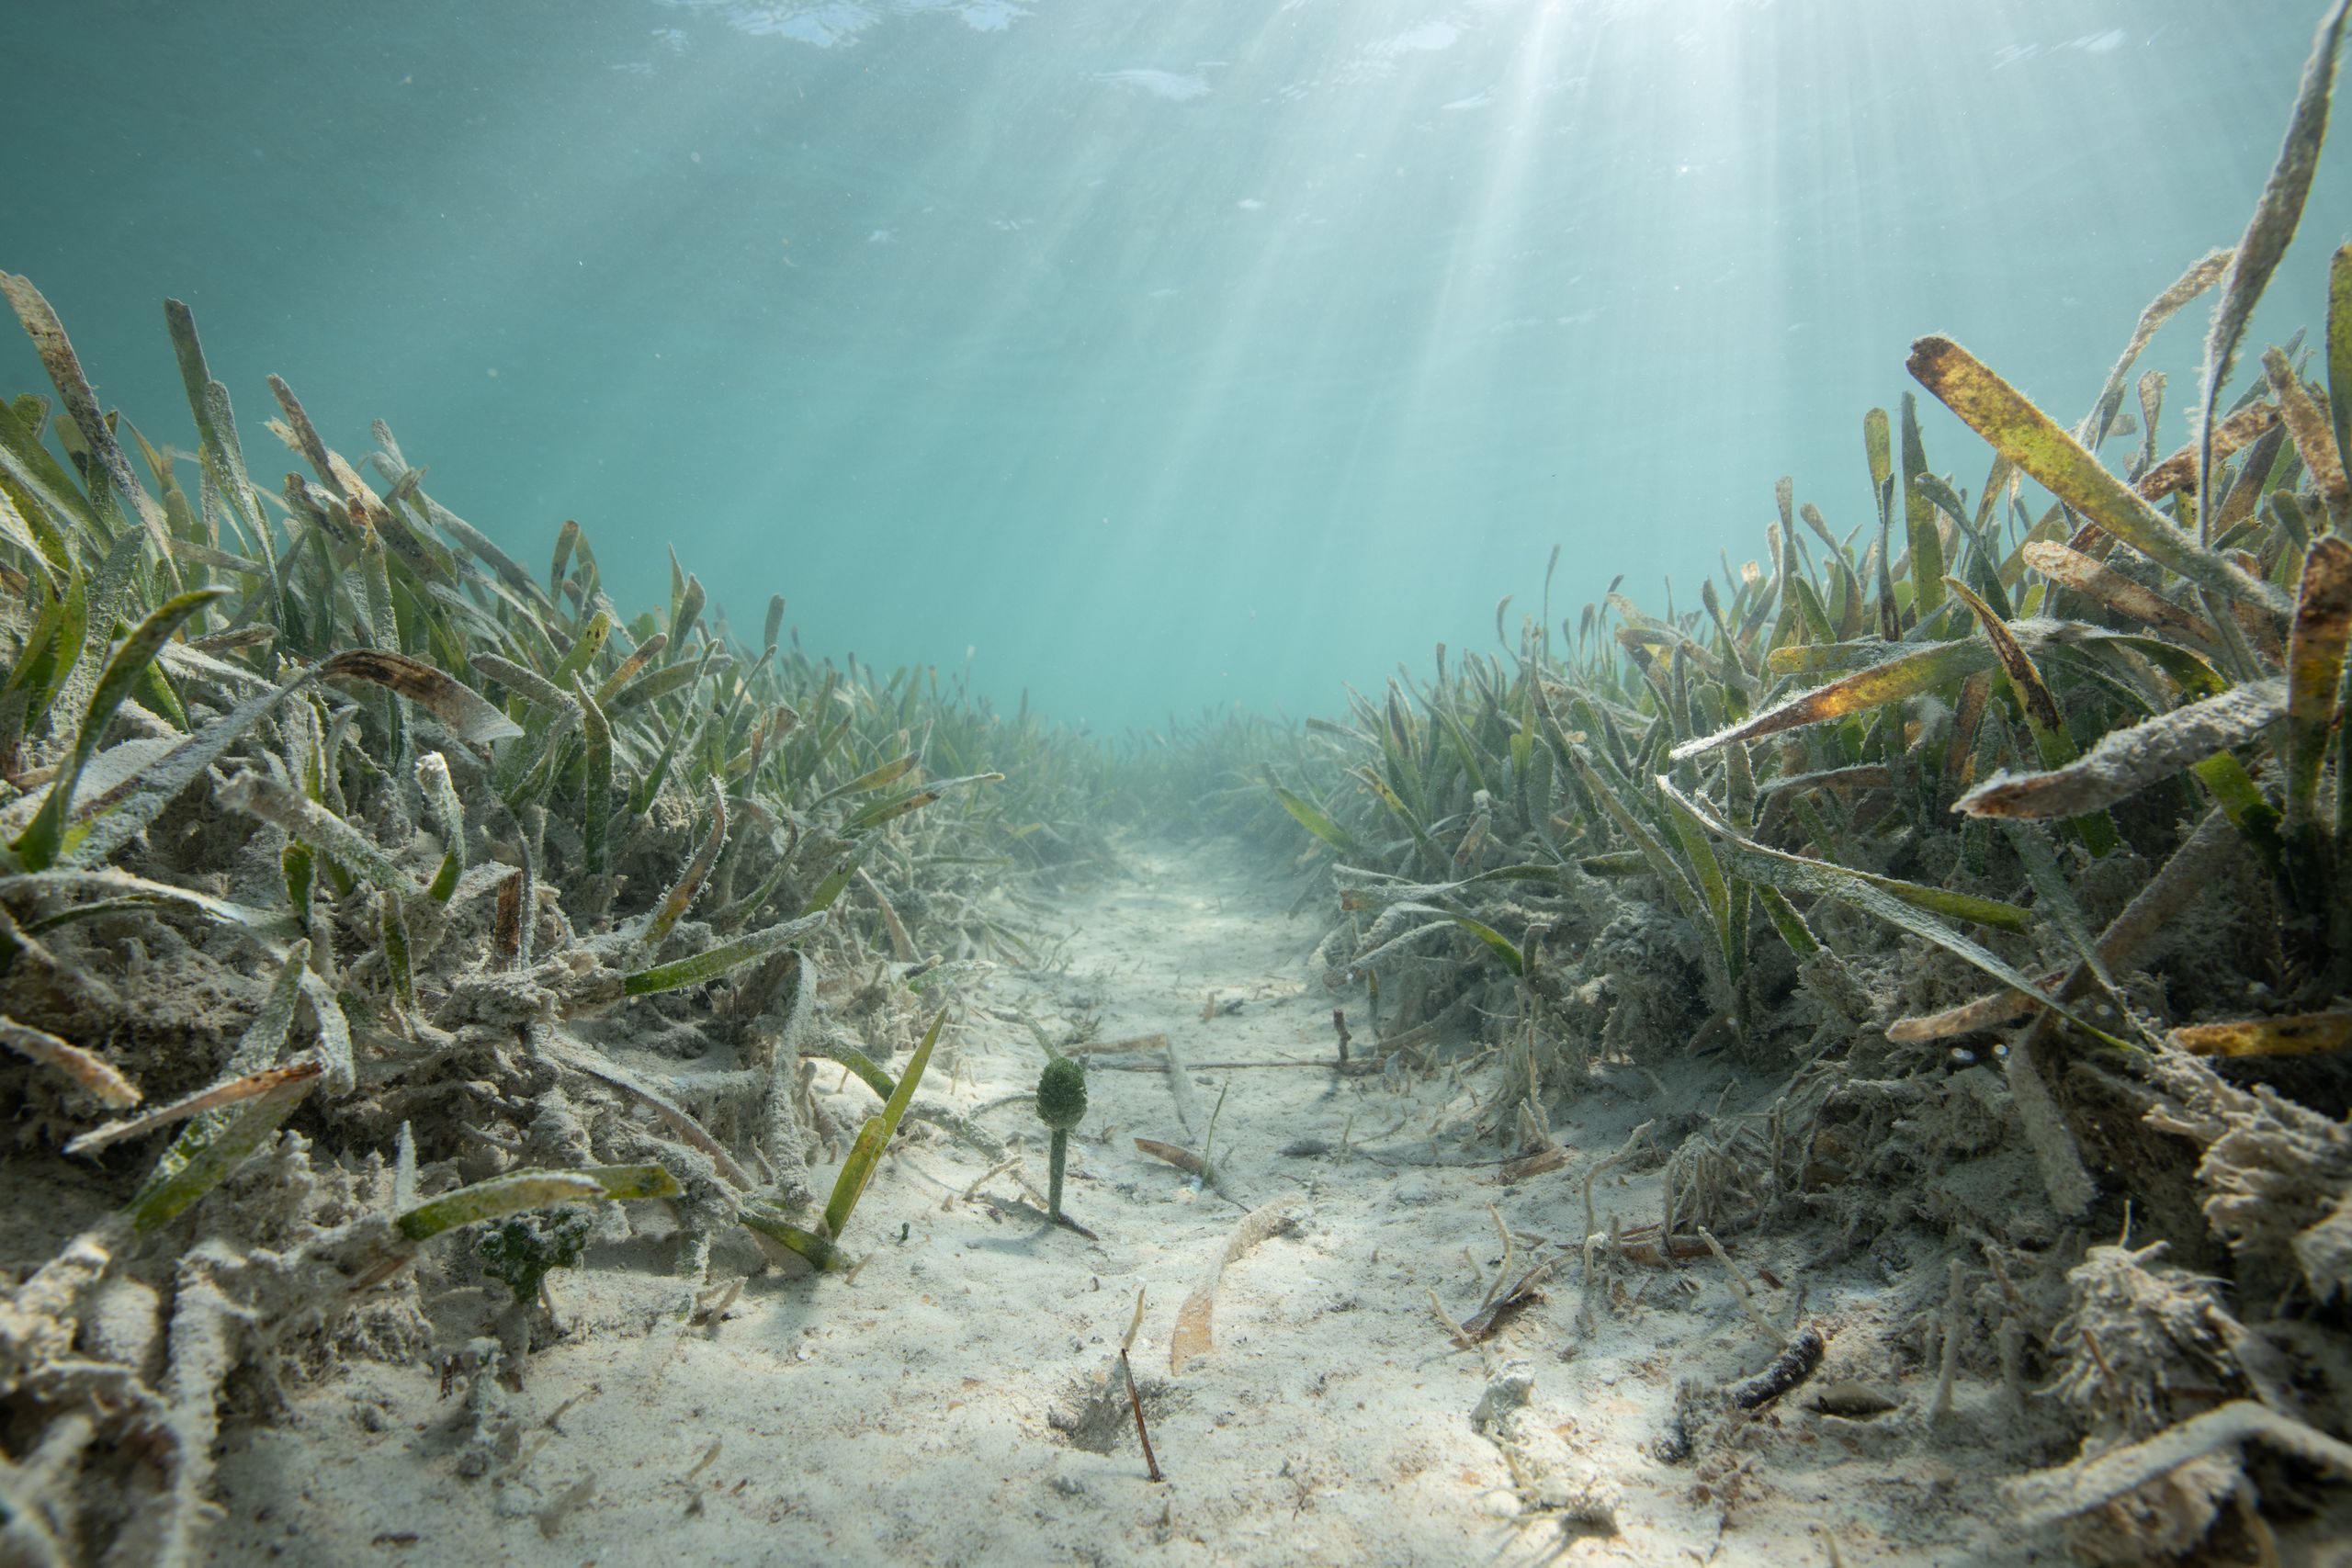 A propeller scar from a boat in a seagrass meadow composed of turtle grass in the Lignumvitae Key Aquatic Preserve, Islamador